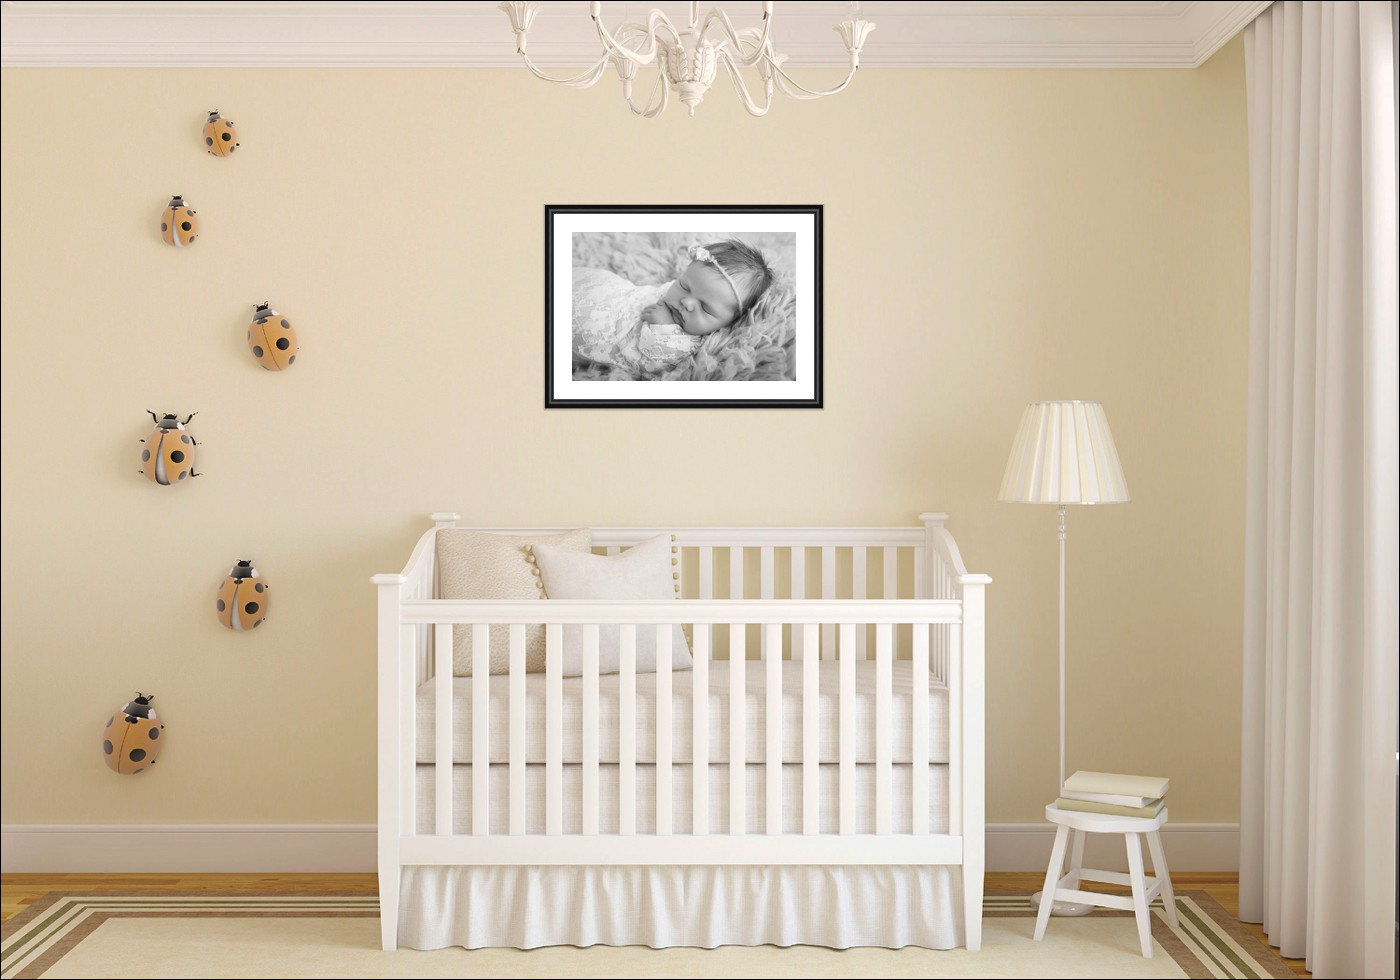 """Professional printed artwork - Available for your walls available in different sizes & collections. Available in framed artwork prints, metal prints, canvases, & wooden prints. This wall art framed print displayed is a 20x30"""" and is $690.All Wall artwork receives 20% saving as a package when a digital collection package is purchased."""